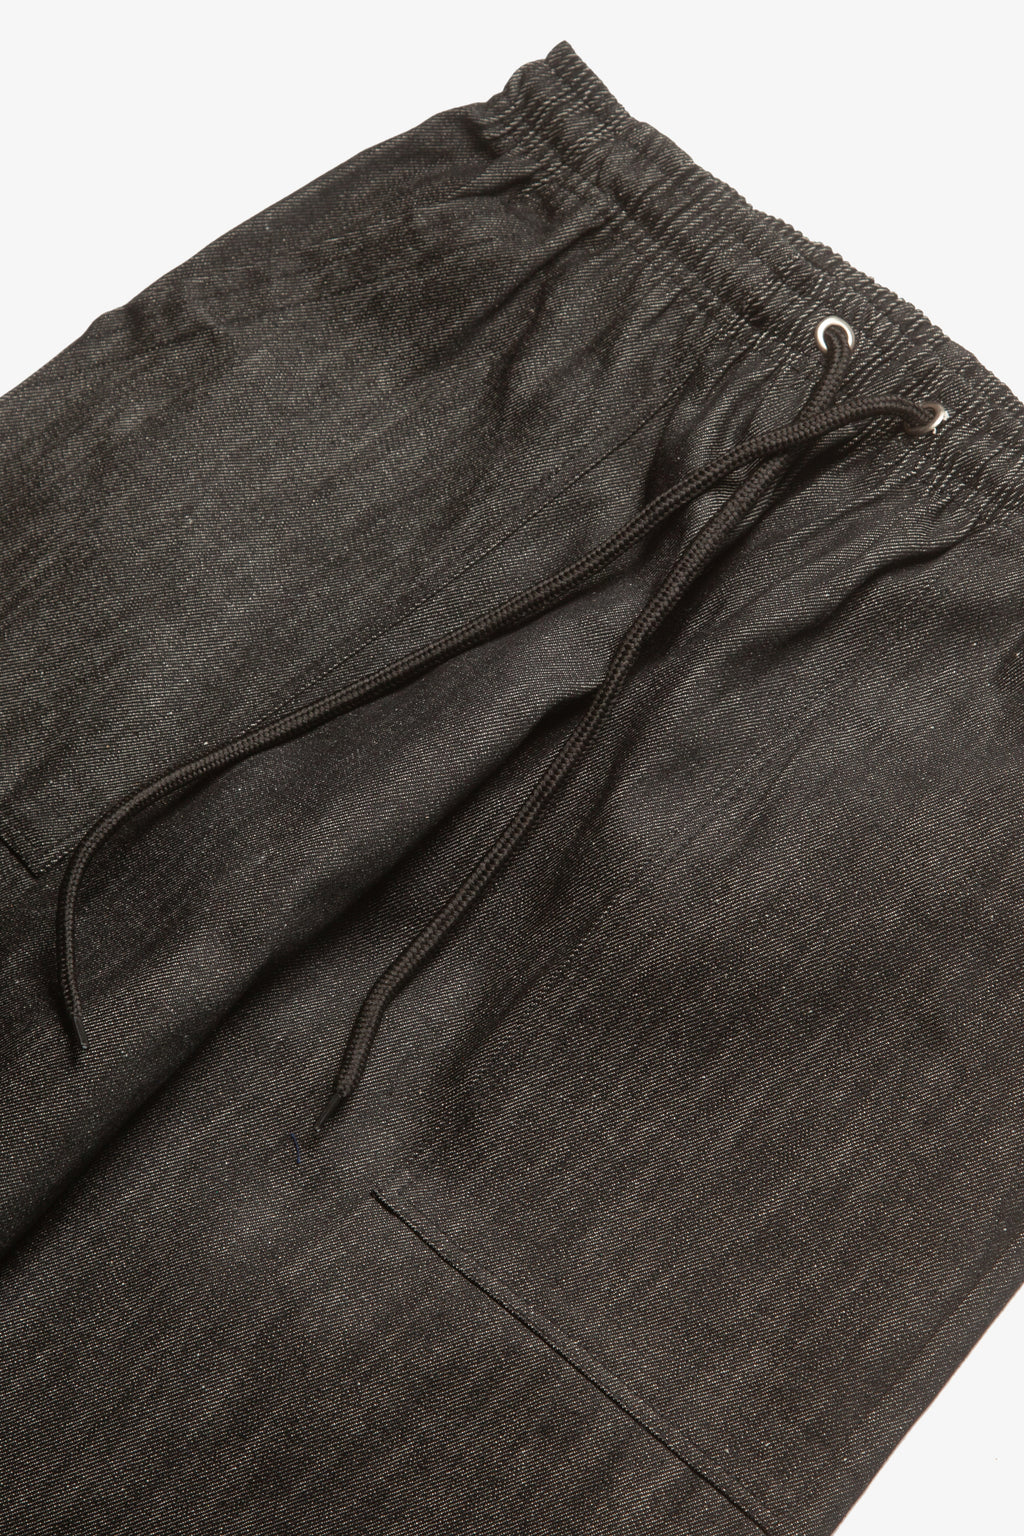 Service Works - Classic Chef Pants - Dark Washed Denim